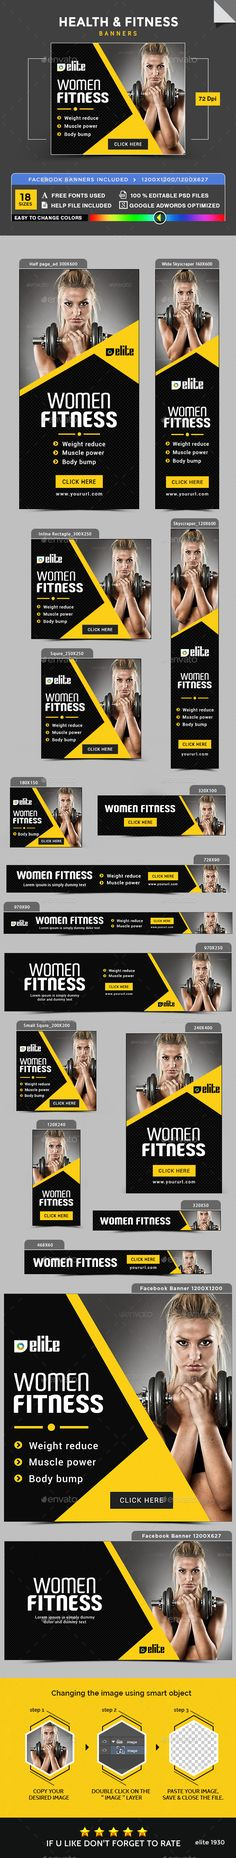 Health & Fitness Banners Template PSD #gym #web #ads #promotion